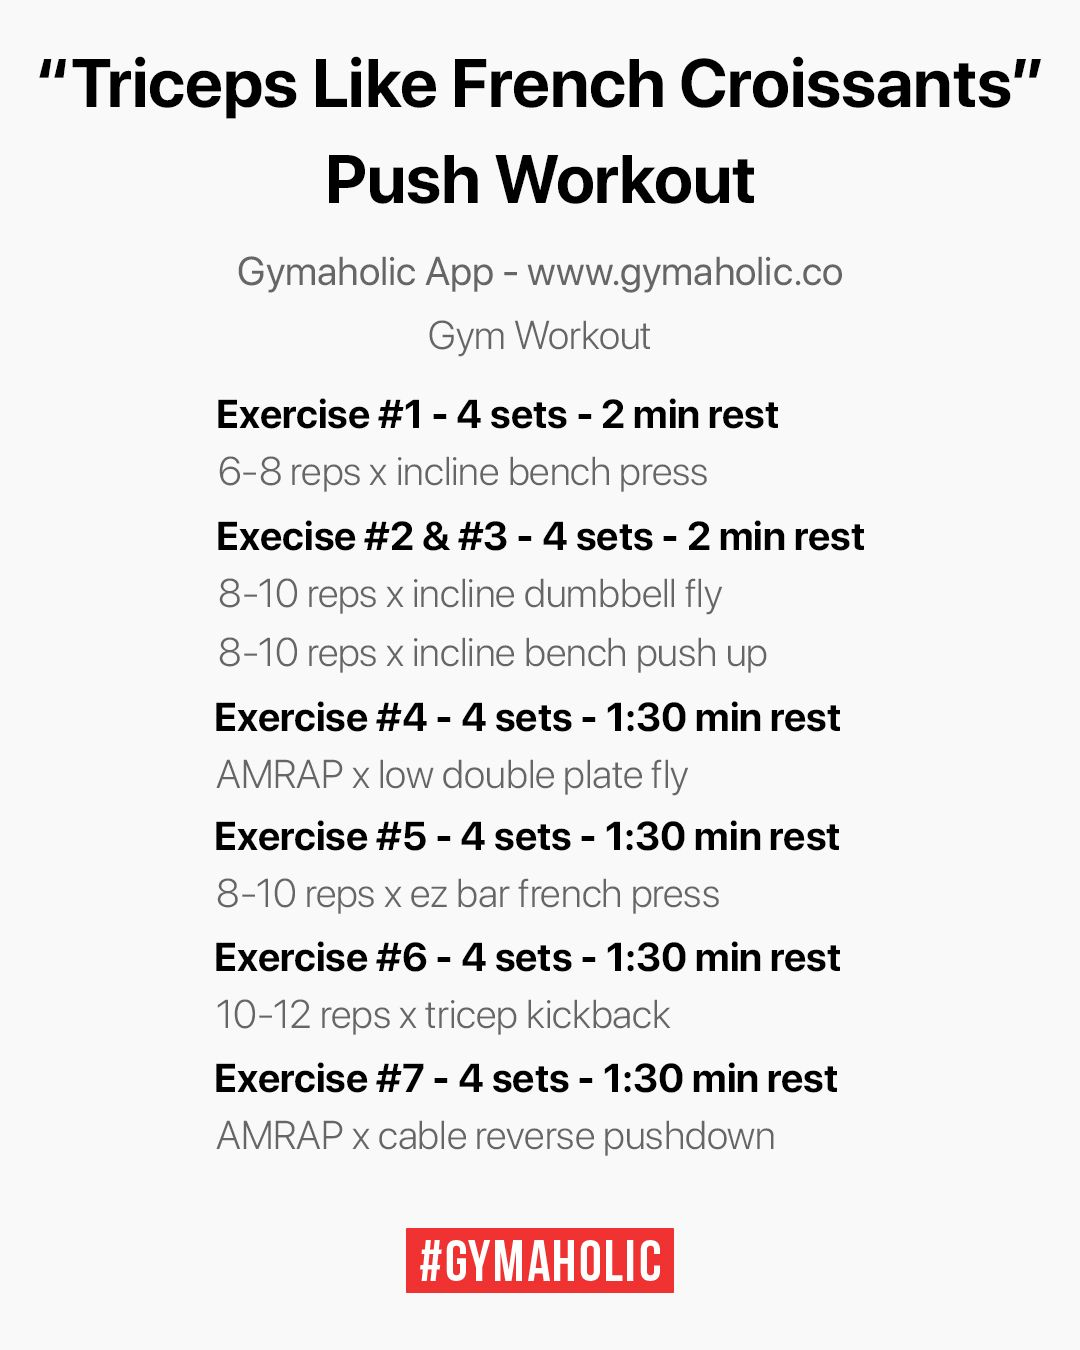 Pin by Victoria on Run in 2020 Gymaholic, Workout apps